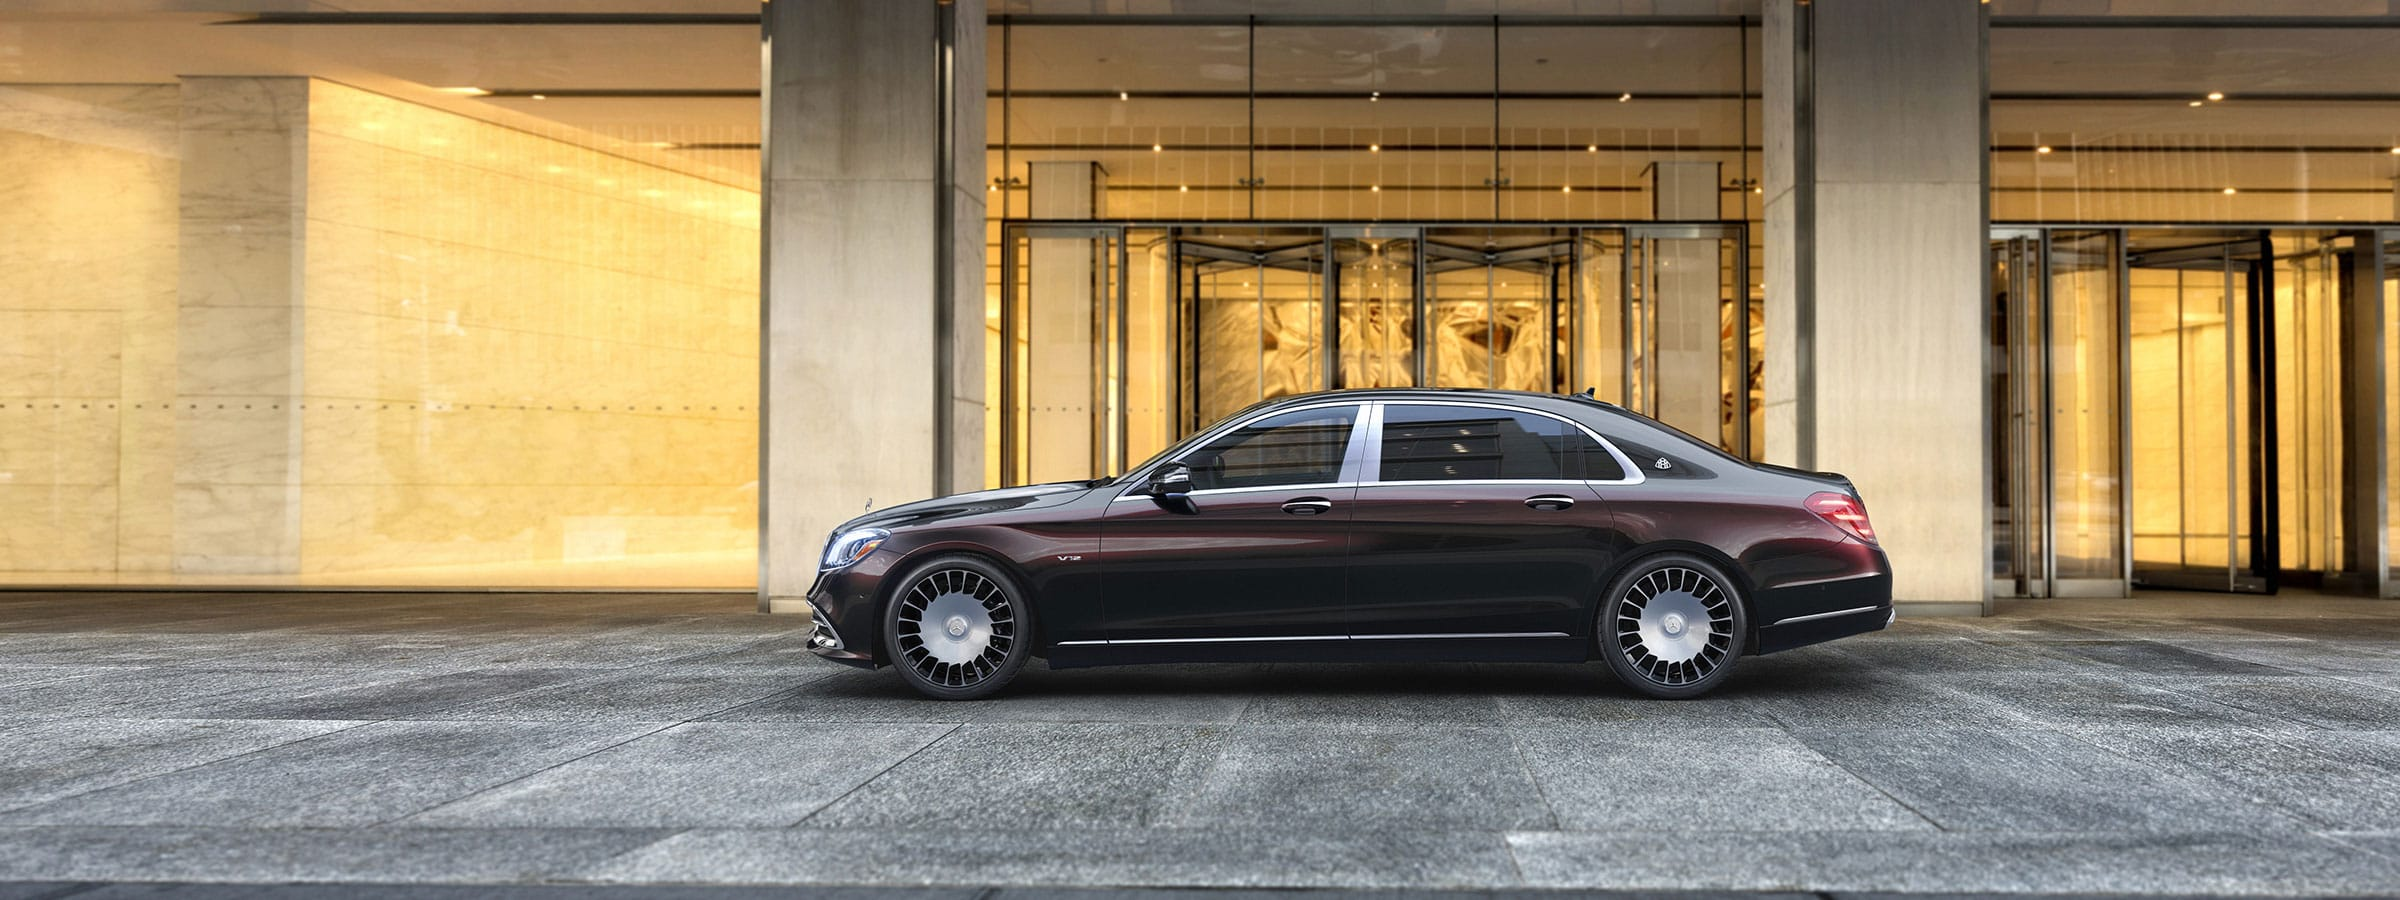 MERCEDES 2019 MAYBACH SEDAN CAR